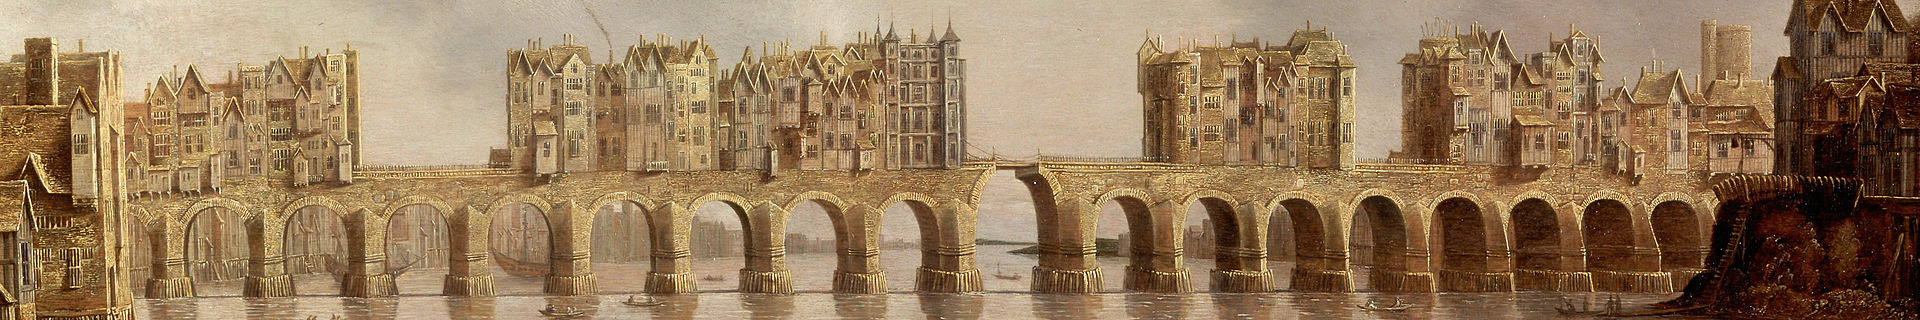 "Detail of Old London Bridge on 1632 oil painting ""View of London Bridge"" by Claude de Jongh. Image from Wikimedia"